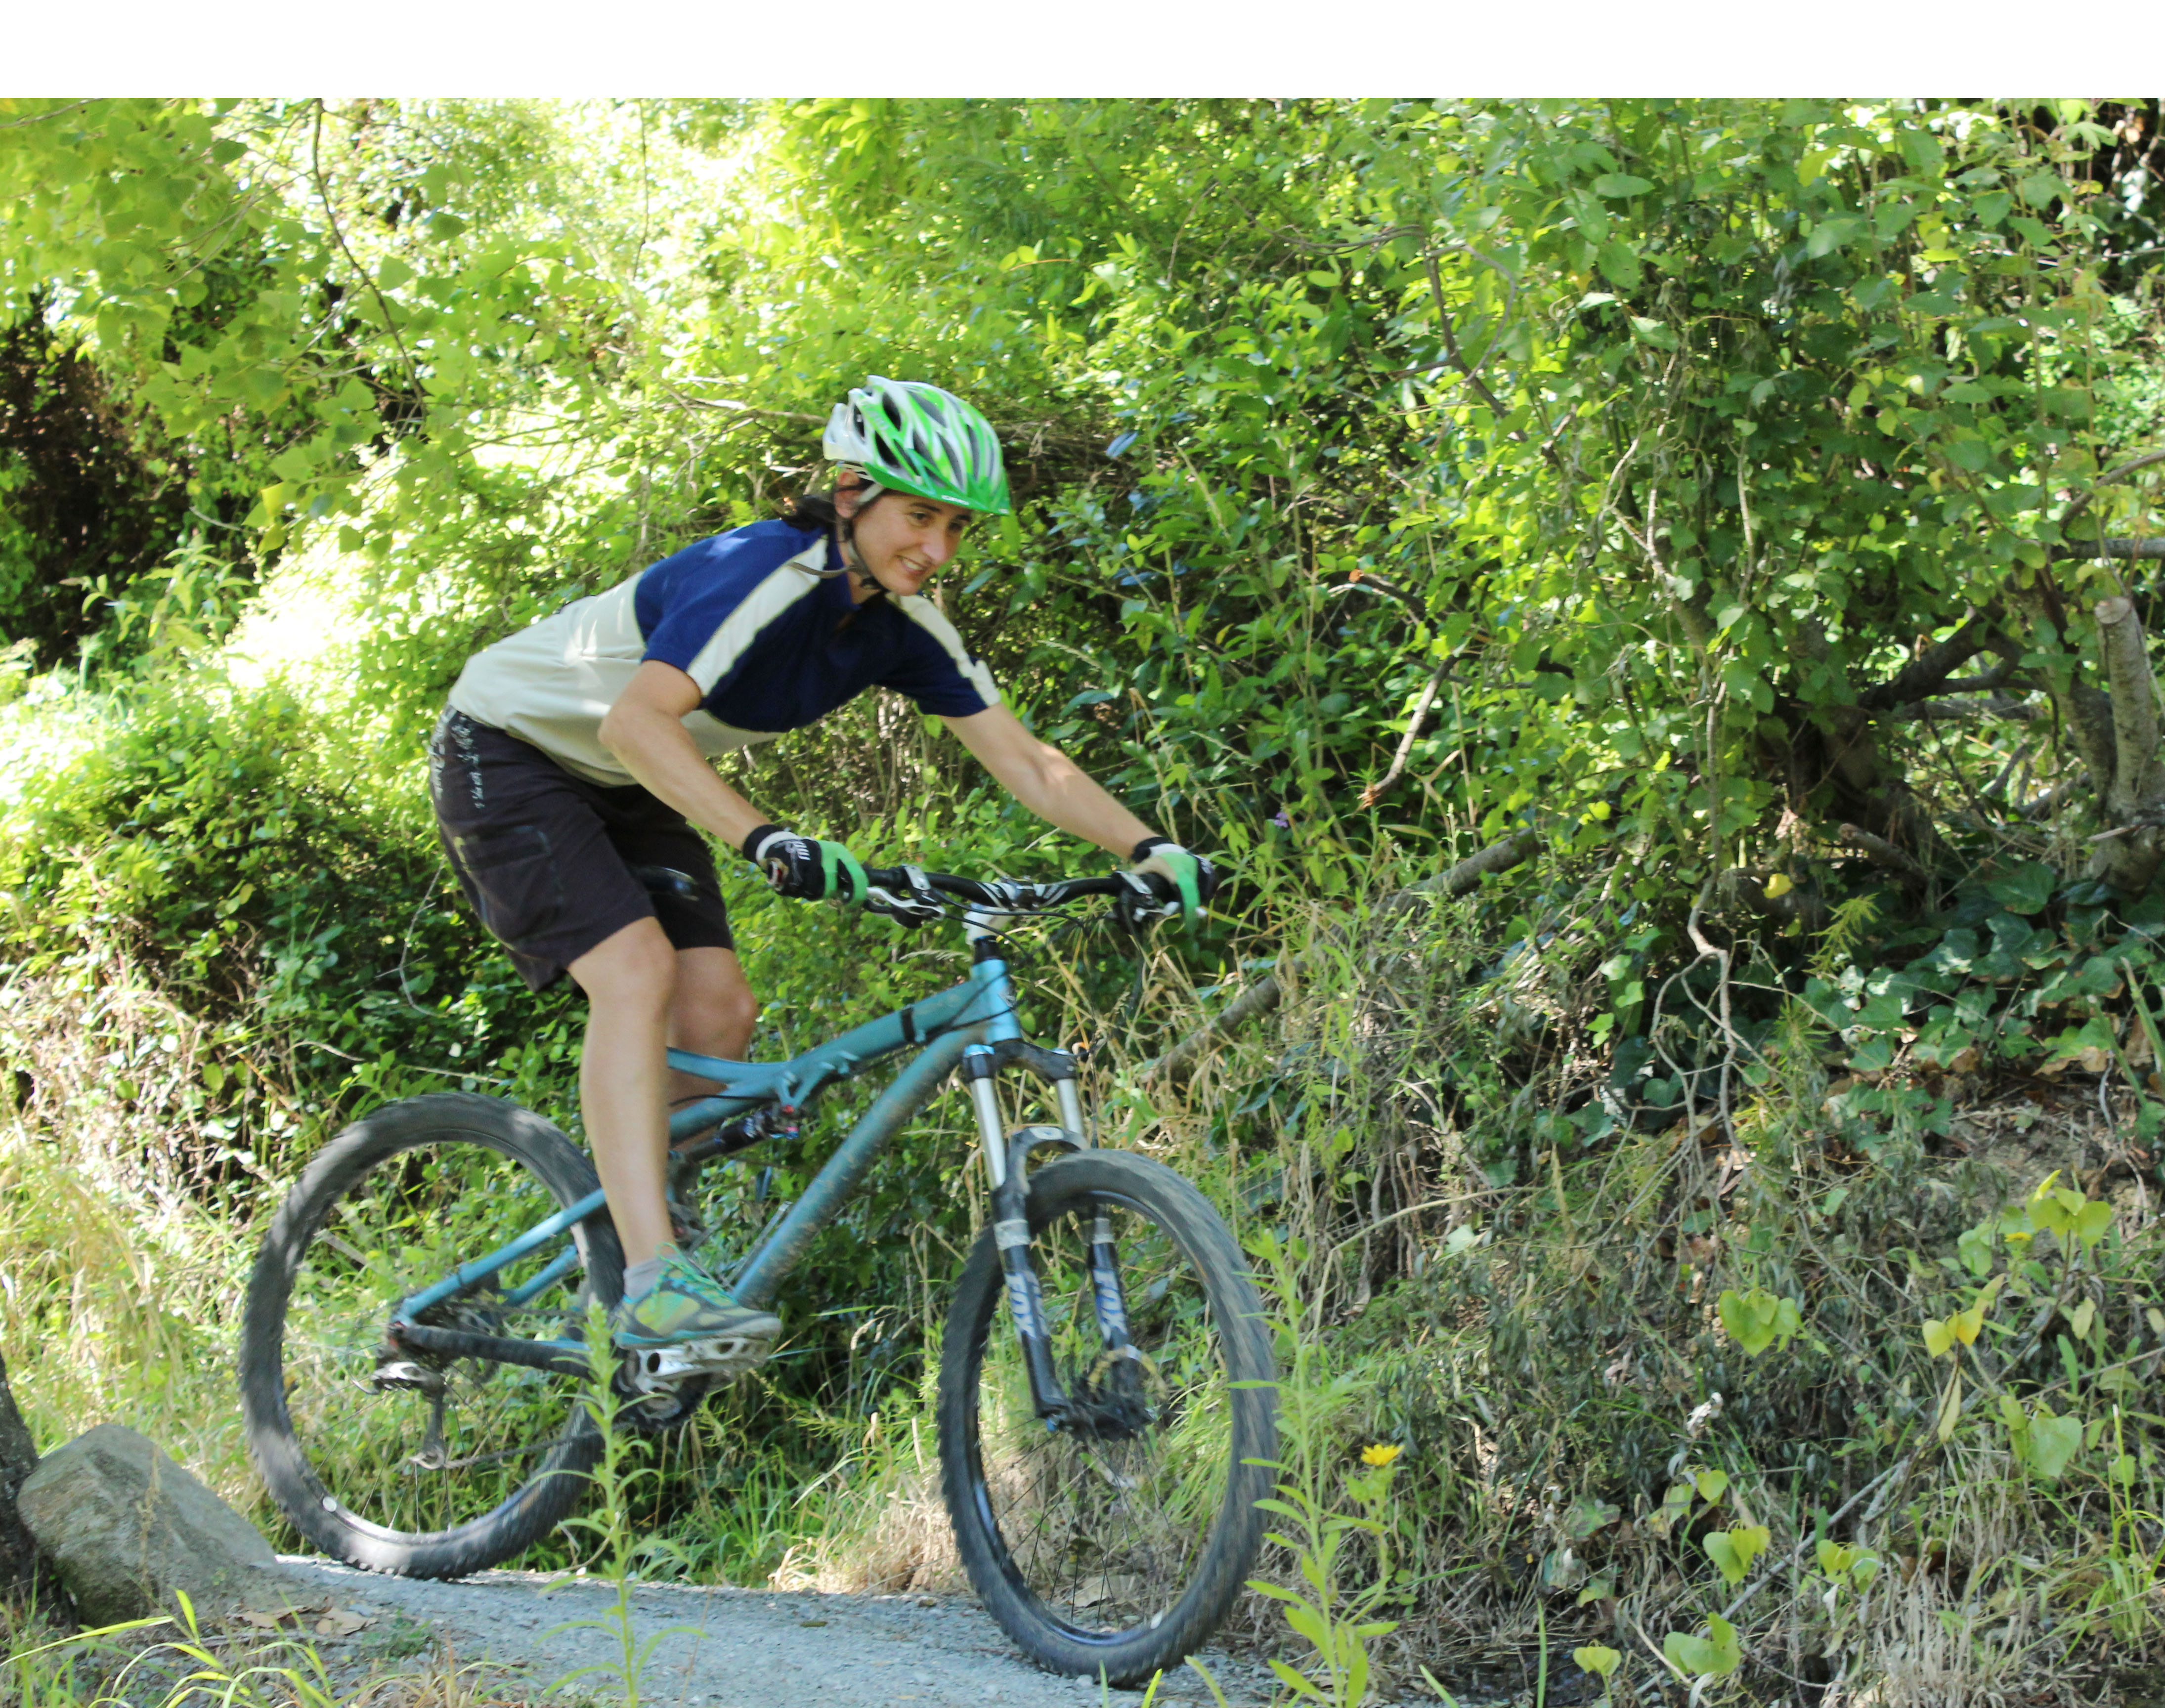 chi riding core control mountain biking 2 points of contact descending goRide